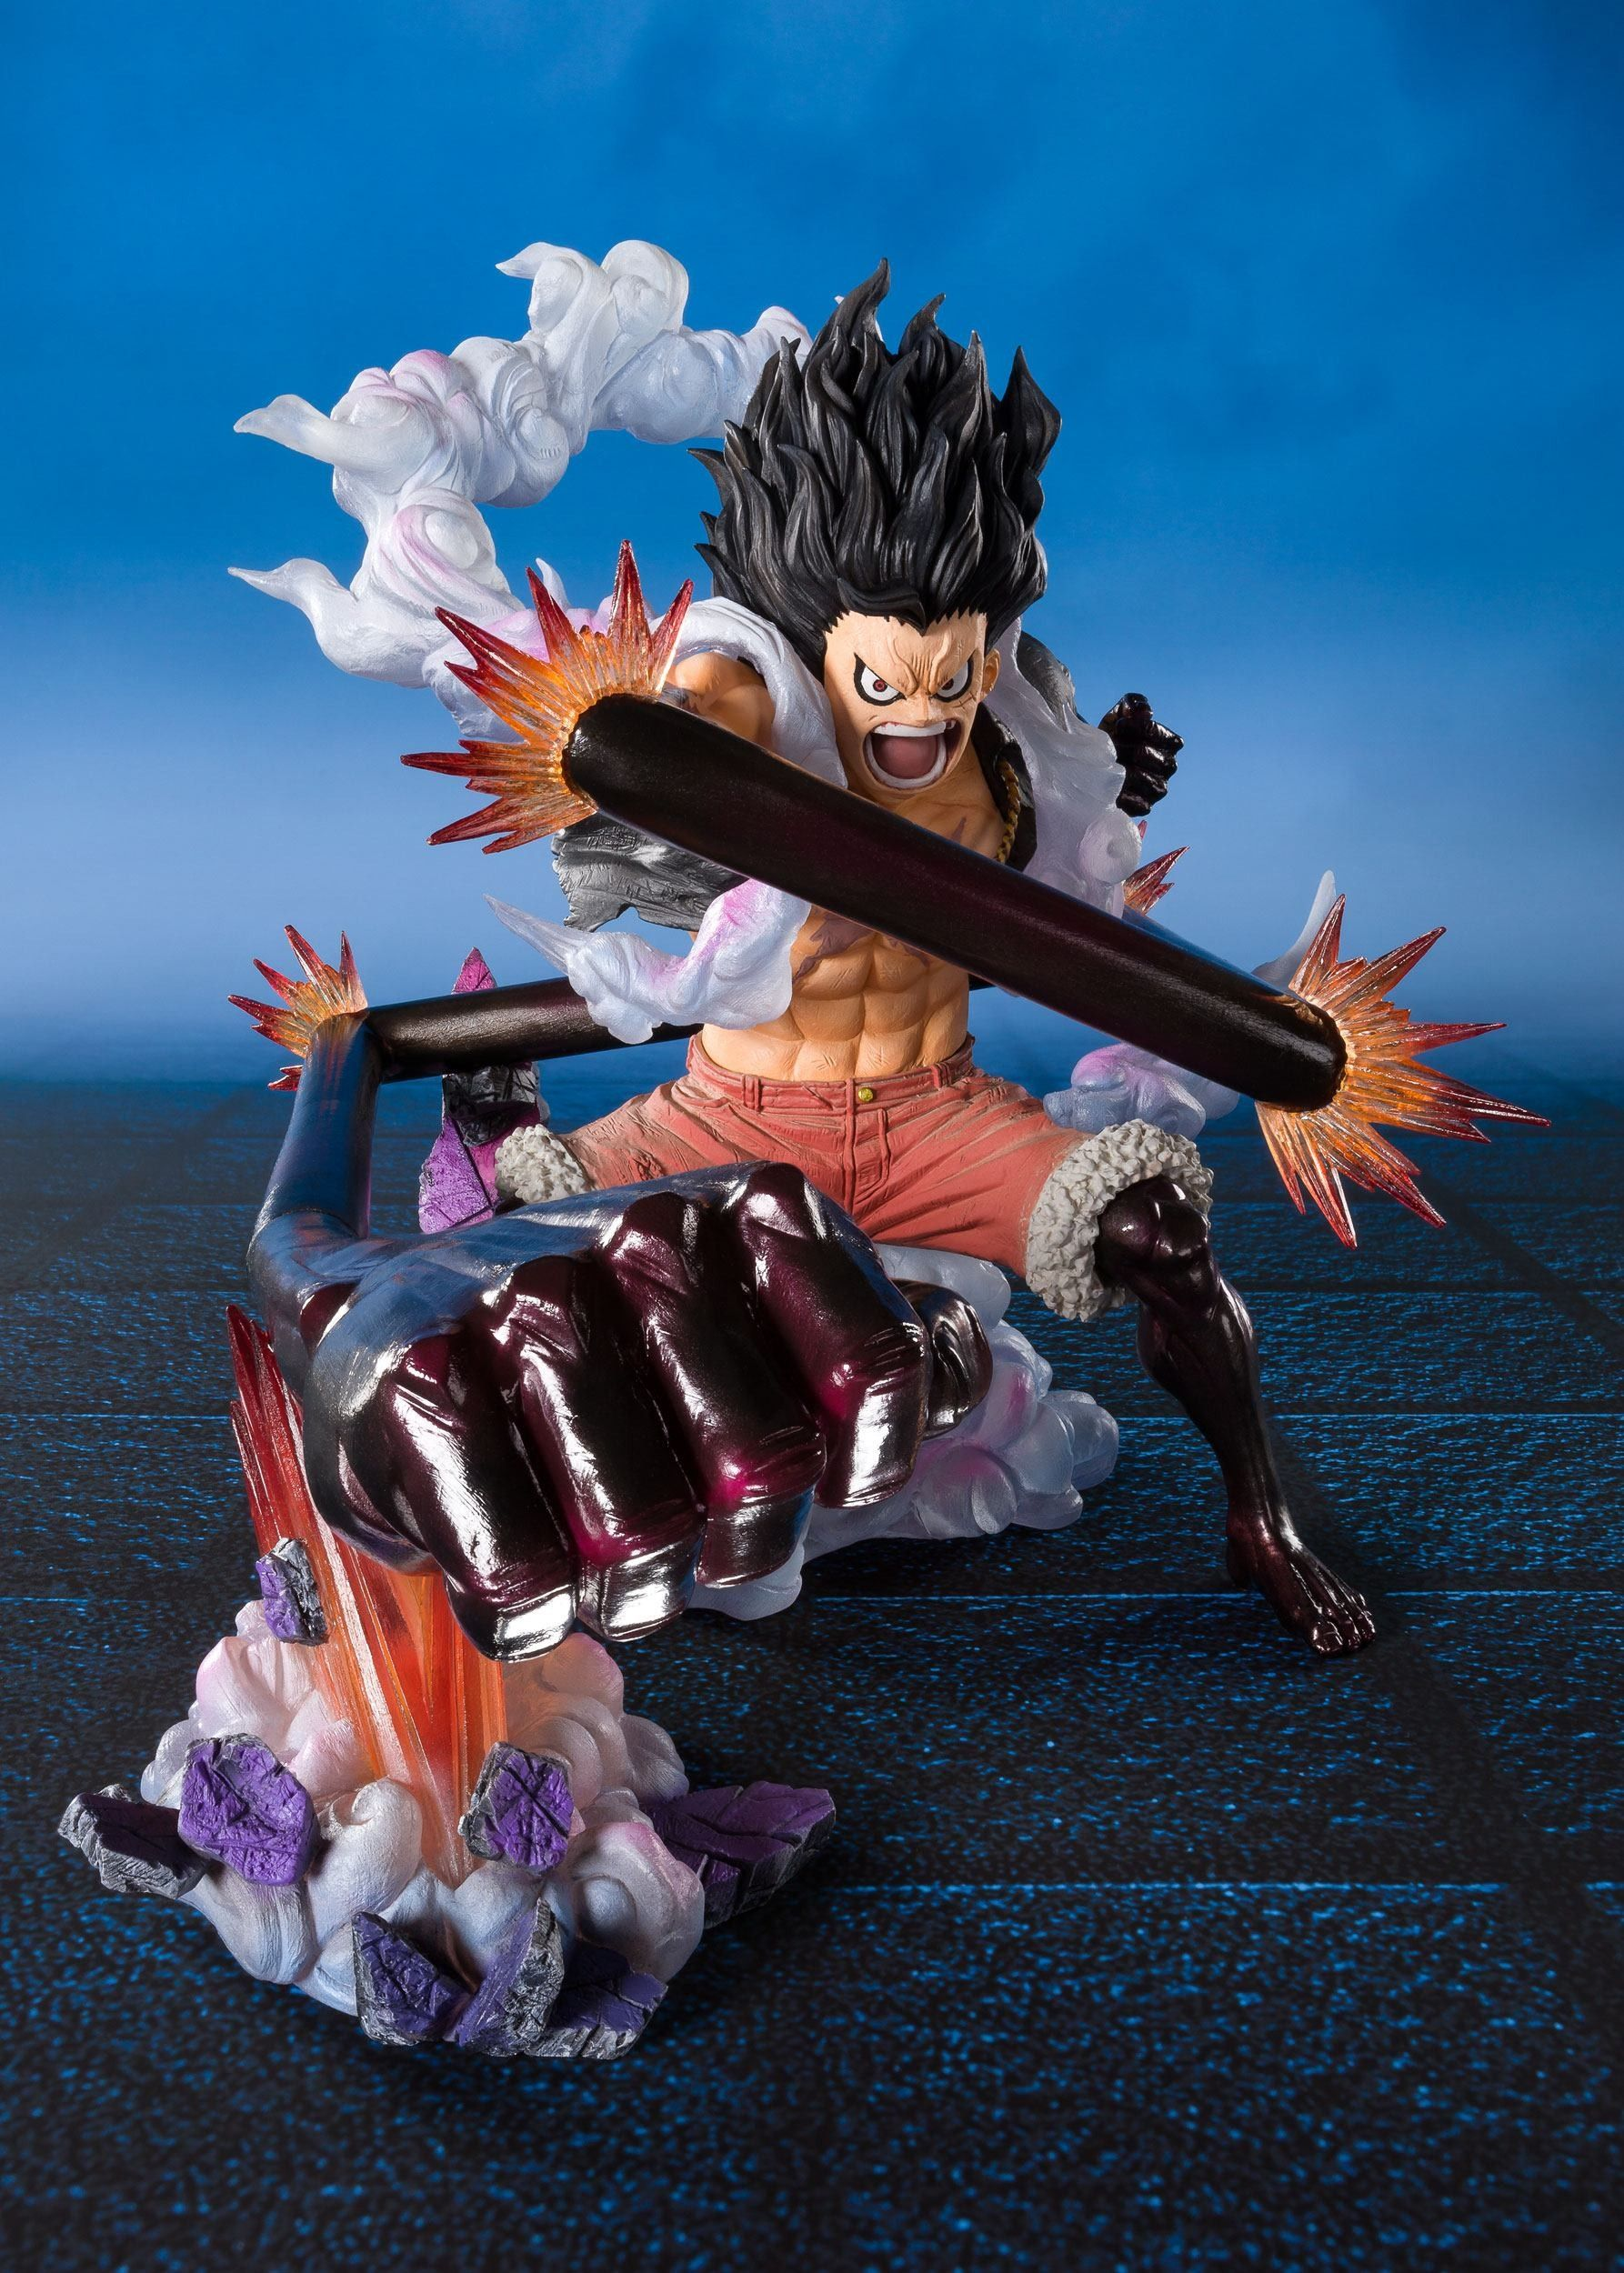 Toys & Hobbies One Piece Figure Gear Third Gomu Gomu No Hawk Whip Monkey D Luffy Figure Figuarts Zero 5th 16cm Pvc Action Figure Heroes Model